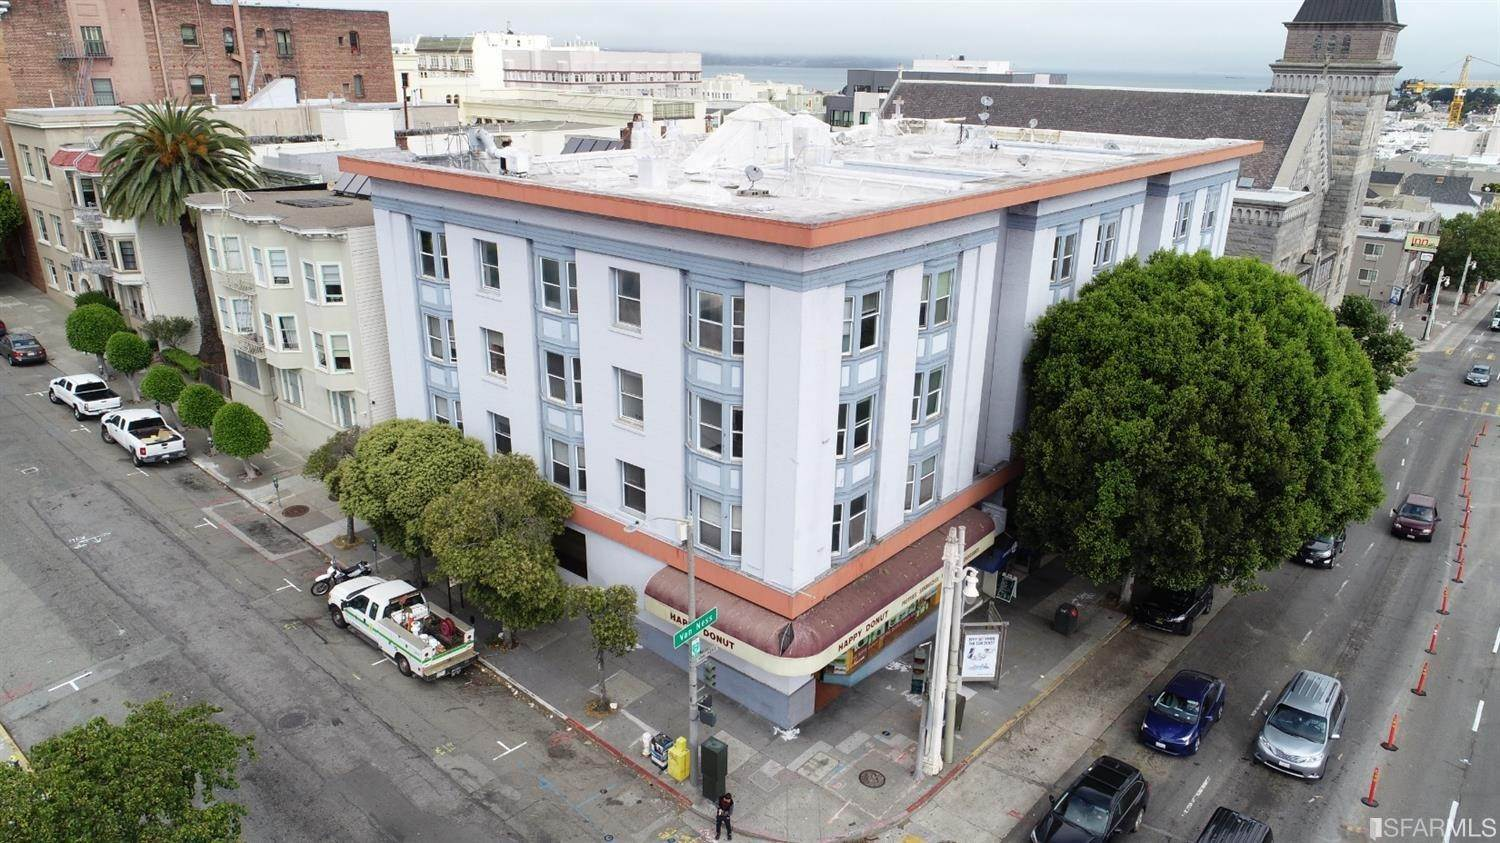 Commercial for Sale at 2101 Van Ness Avenue San Francisco, California 94109 United States